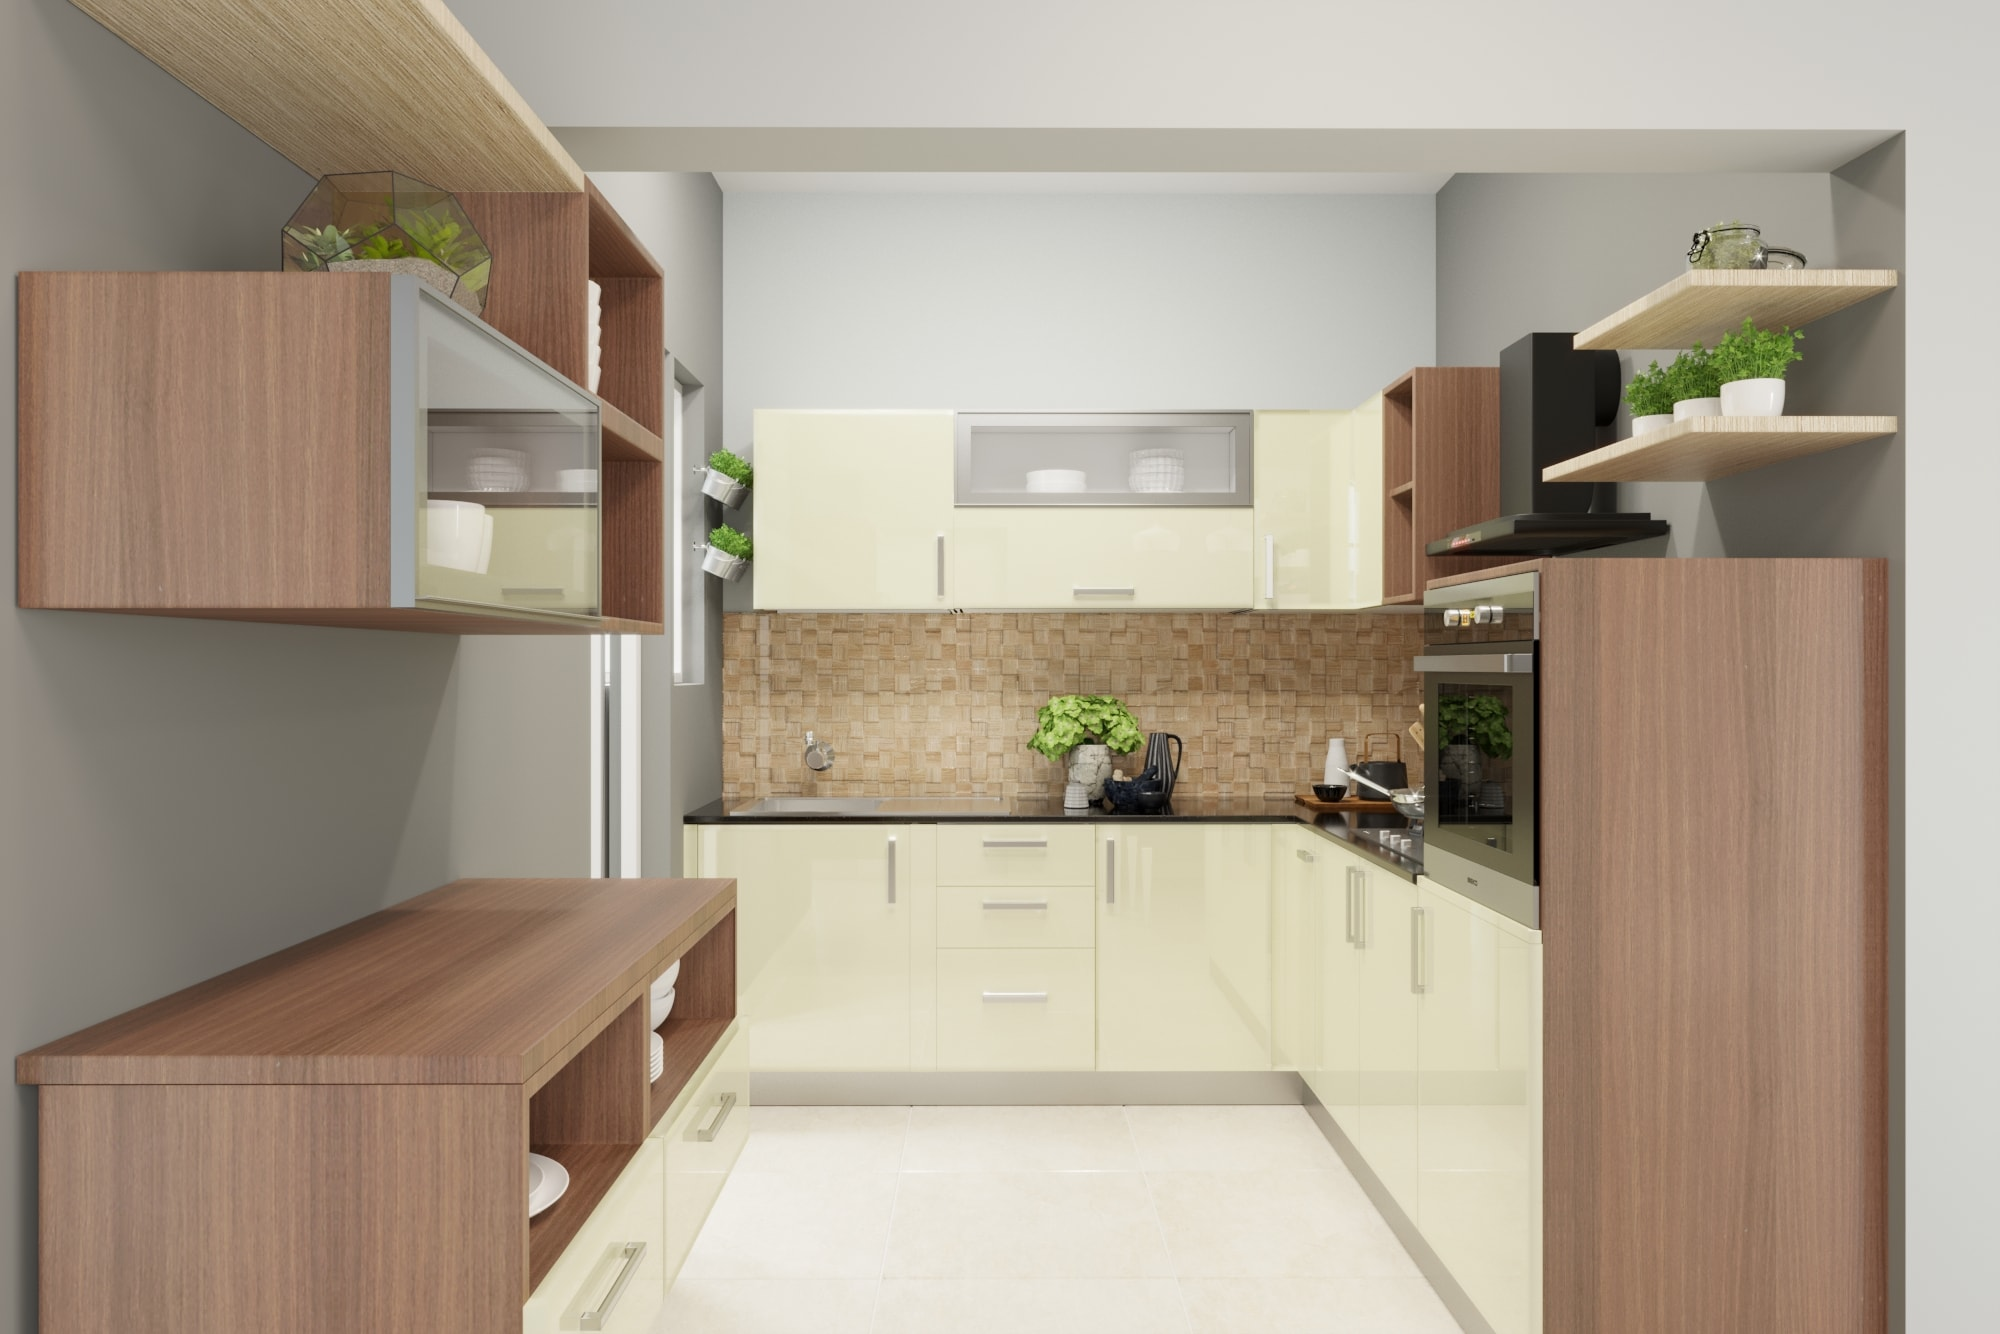 L-Shaped Modular Kitchen Designs India | HomeLane